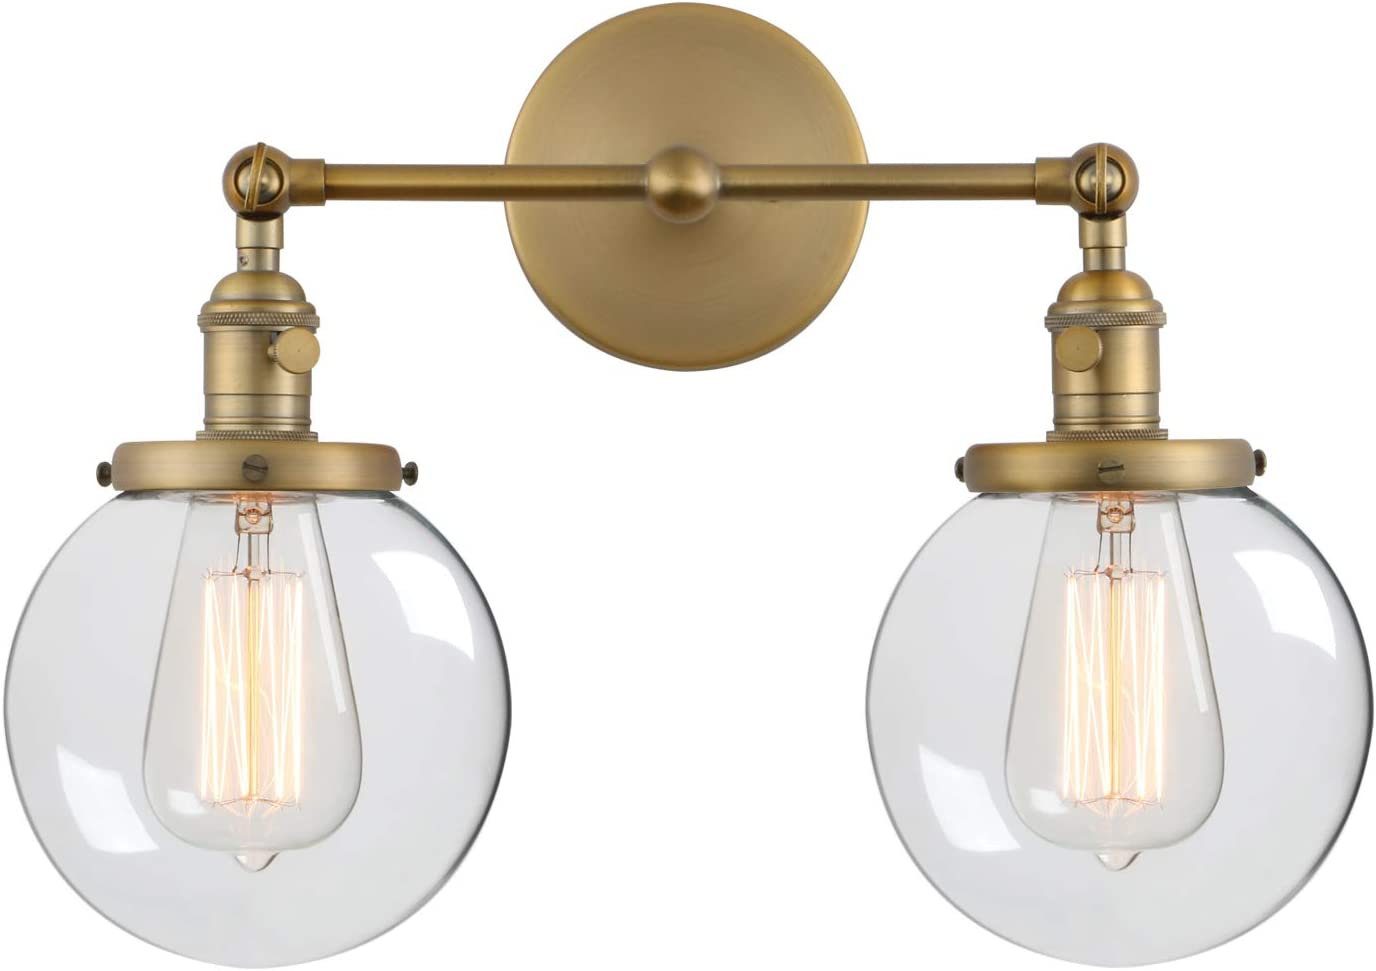 Phansthy Vintage 2 Light Wall Sconce Industrial Wall Light with Dual 5.9 Inches Globe Glass Lampshade